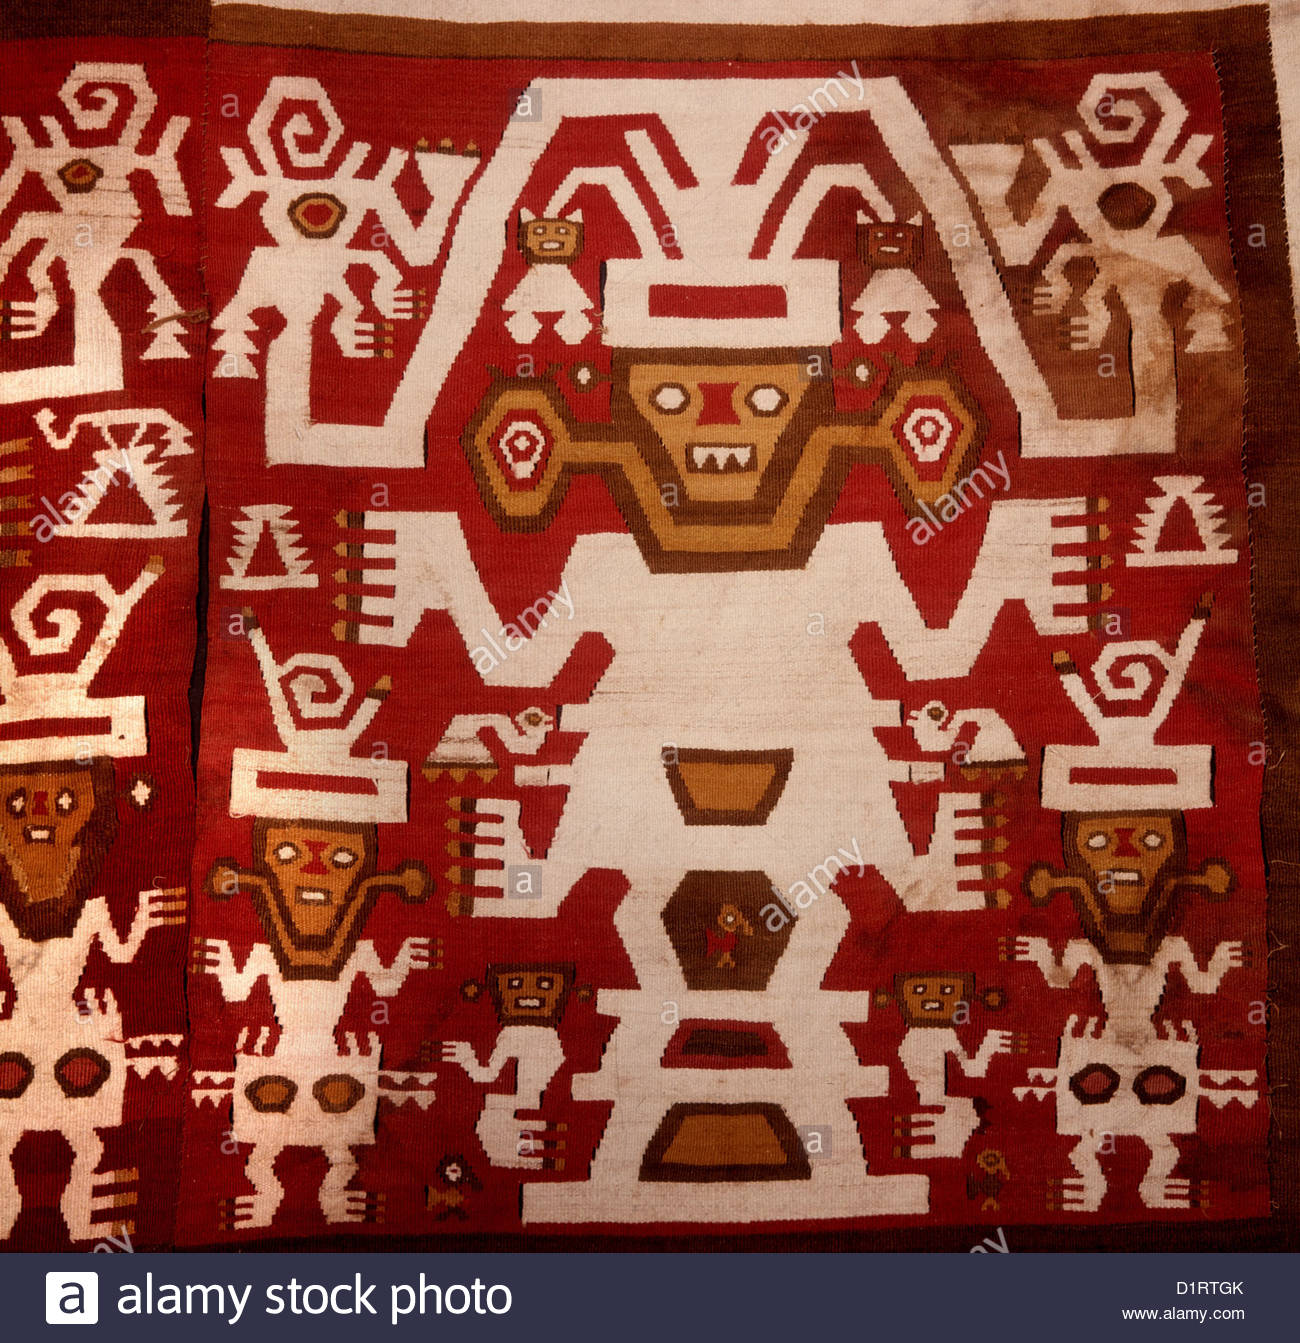 PERU, textile made of wool and cotton decorated with anthropomorphic design representing high ranking personages - Stock Image